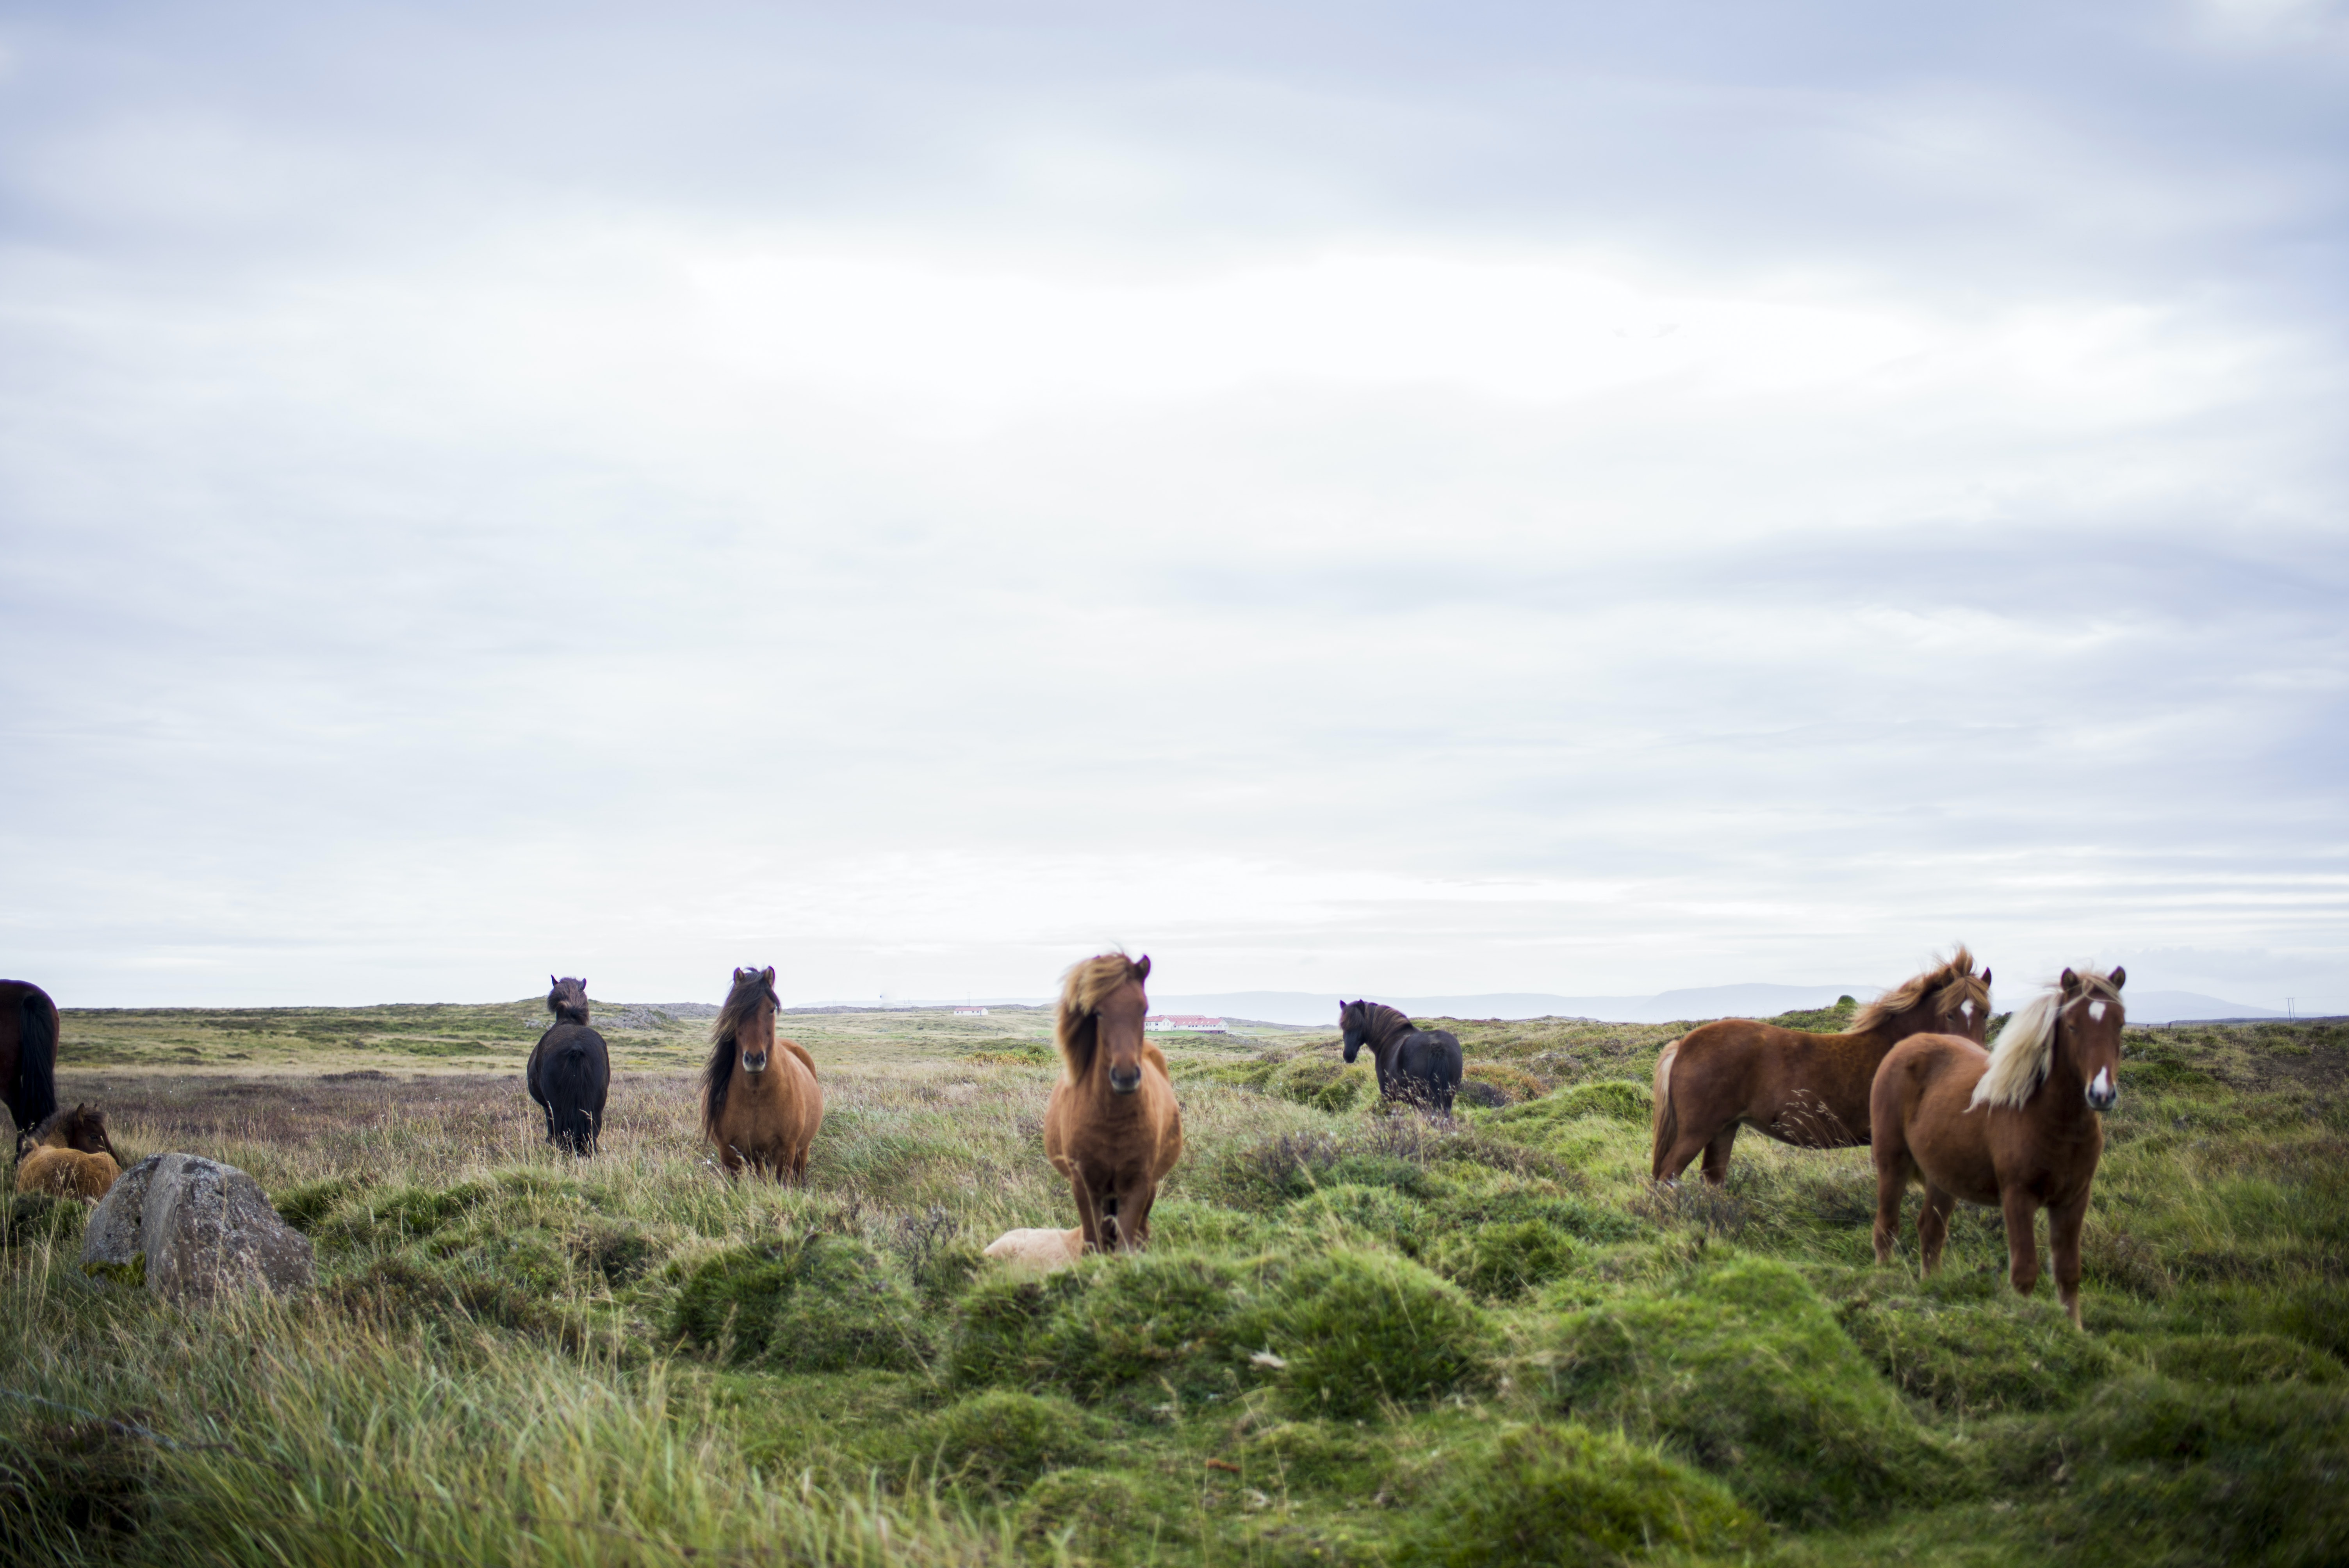 A herd of wild horses grazing in a green meadow